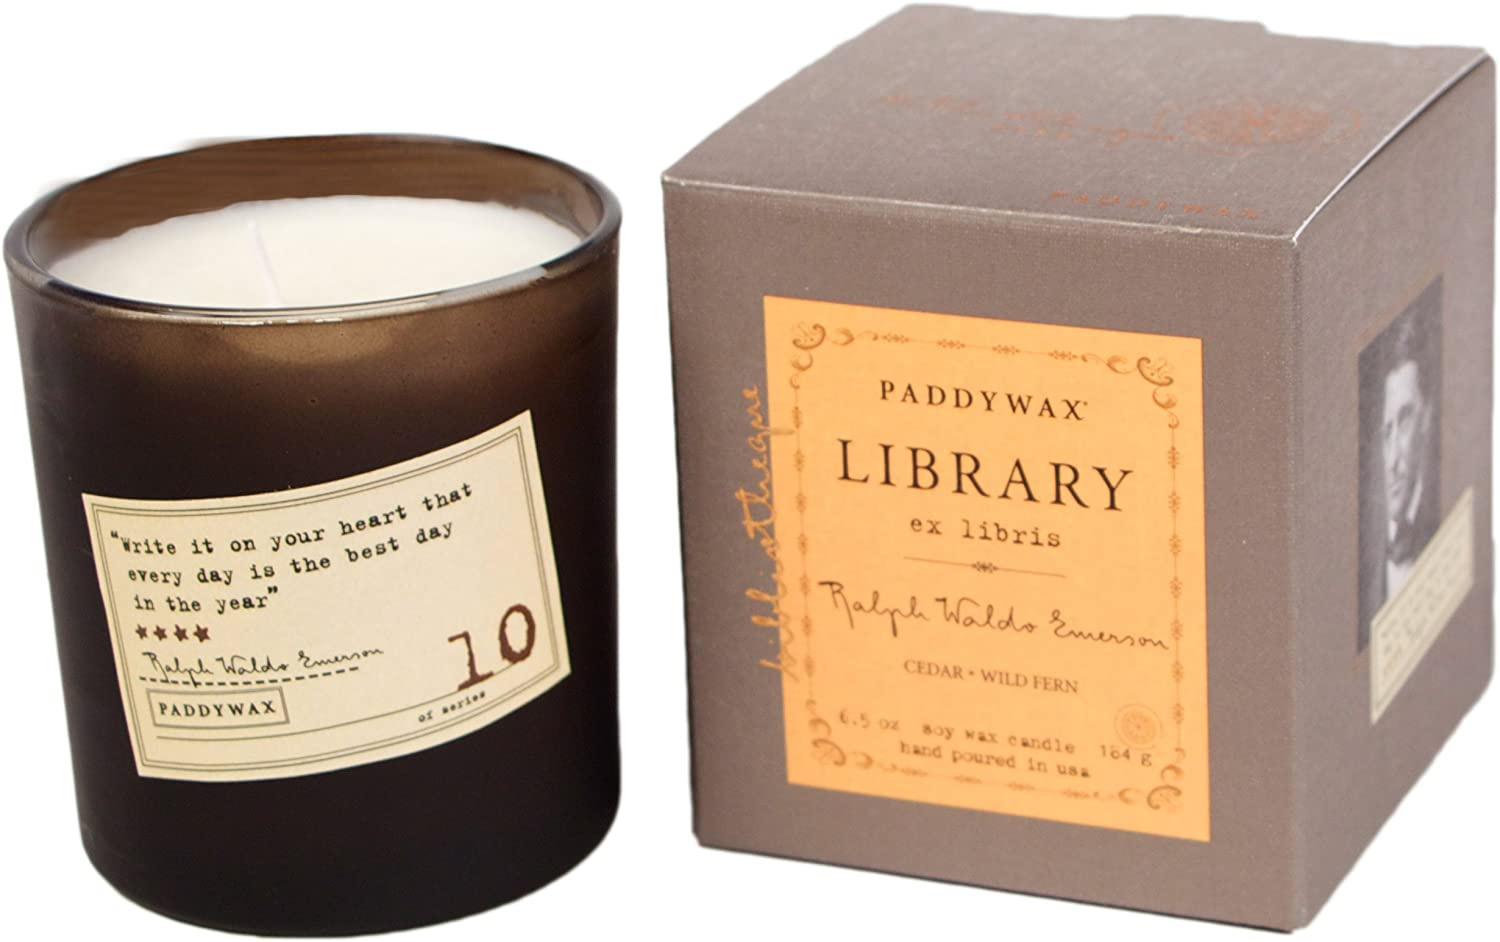 Paddywax Library Collection Ralph Waldo Emerson Scented Soy Wax Candle, 6.5-Ounce, Cedar & Wild Fern